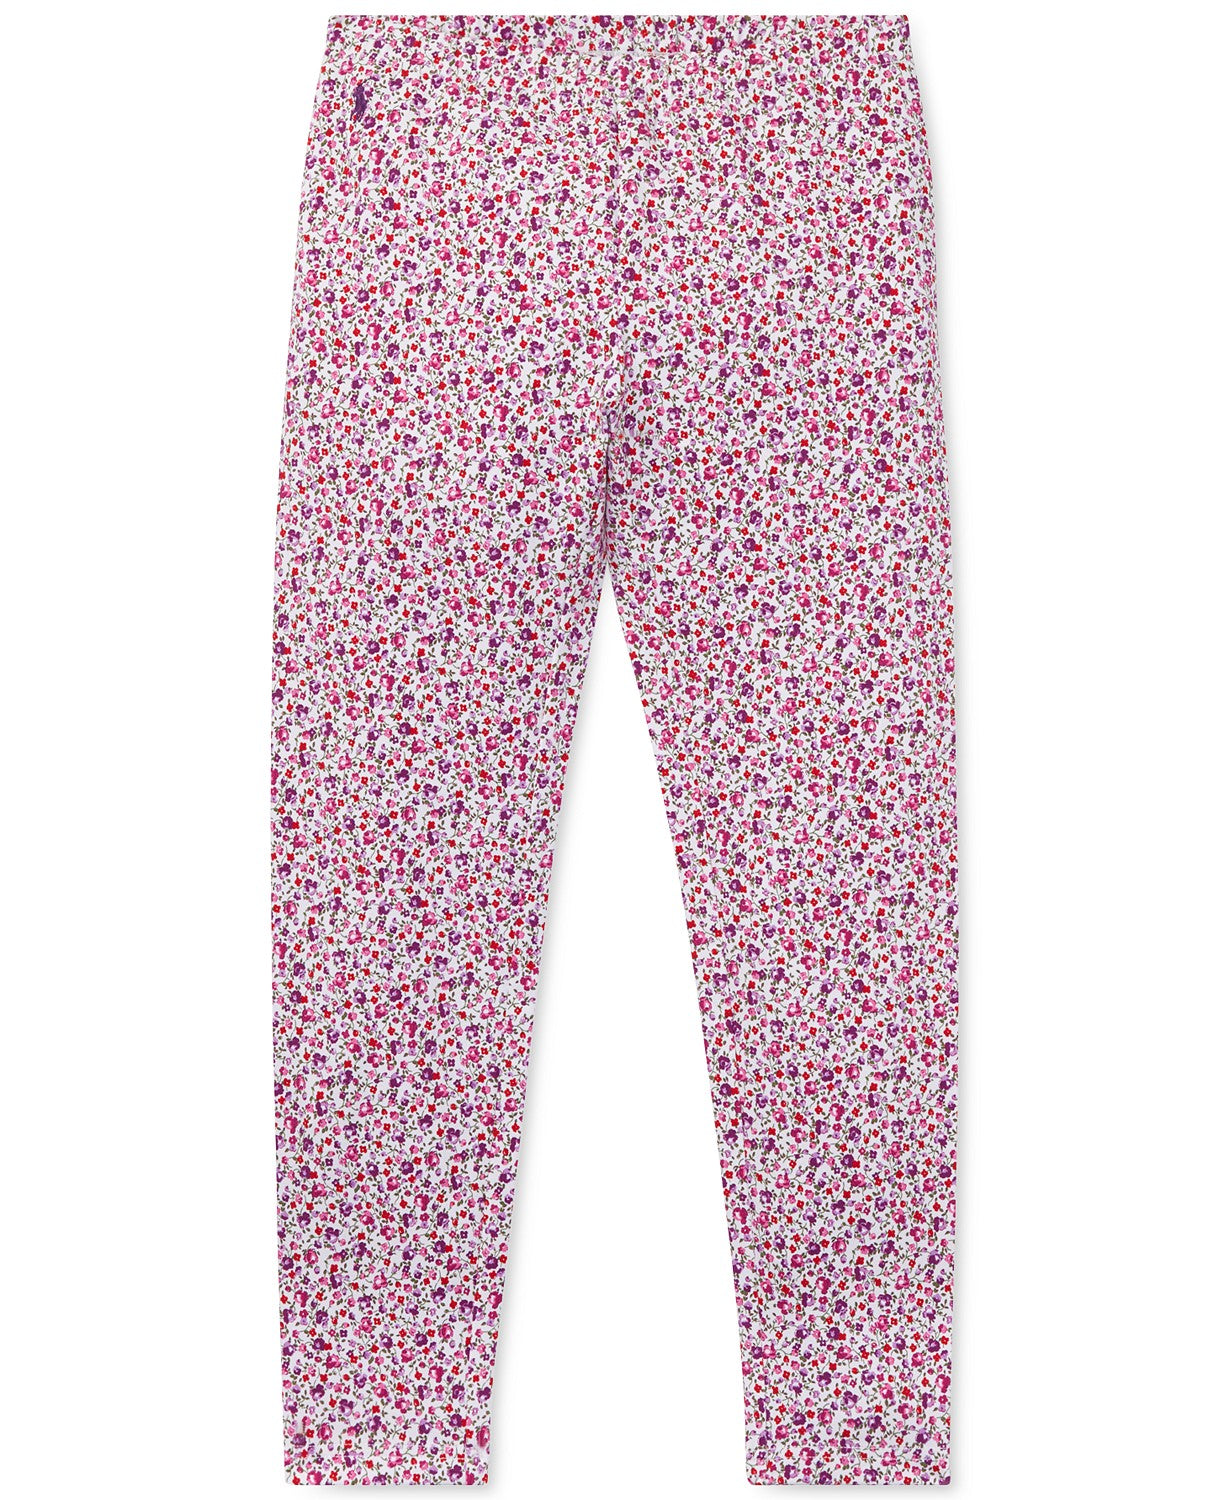 Ralph Lauren Childrenswear Purple Girls 7-16 Floral Jersey Legging